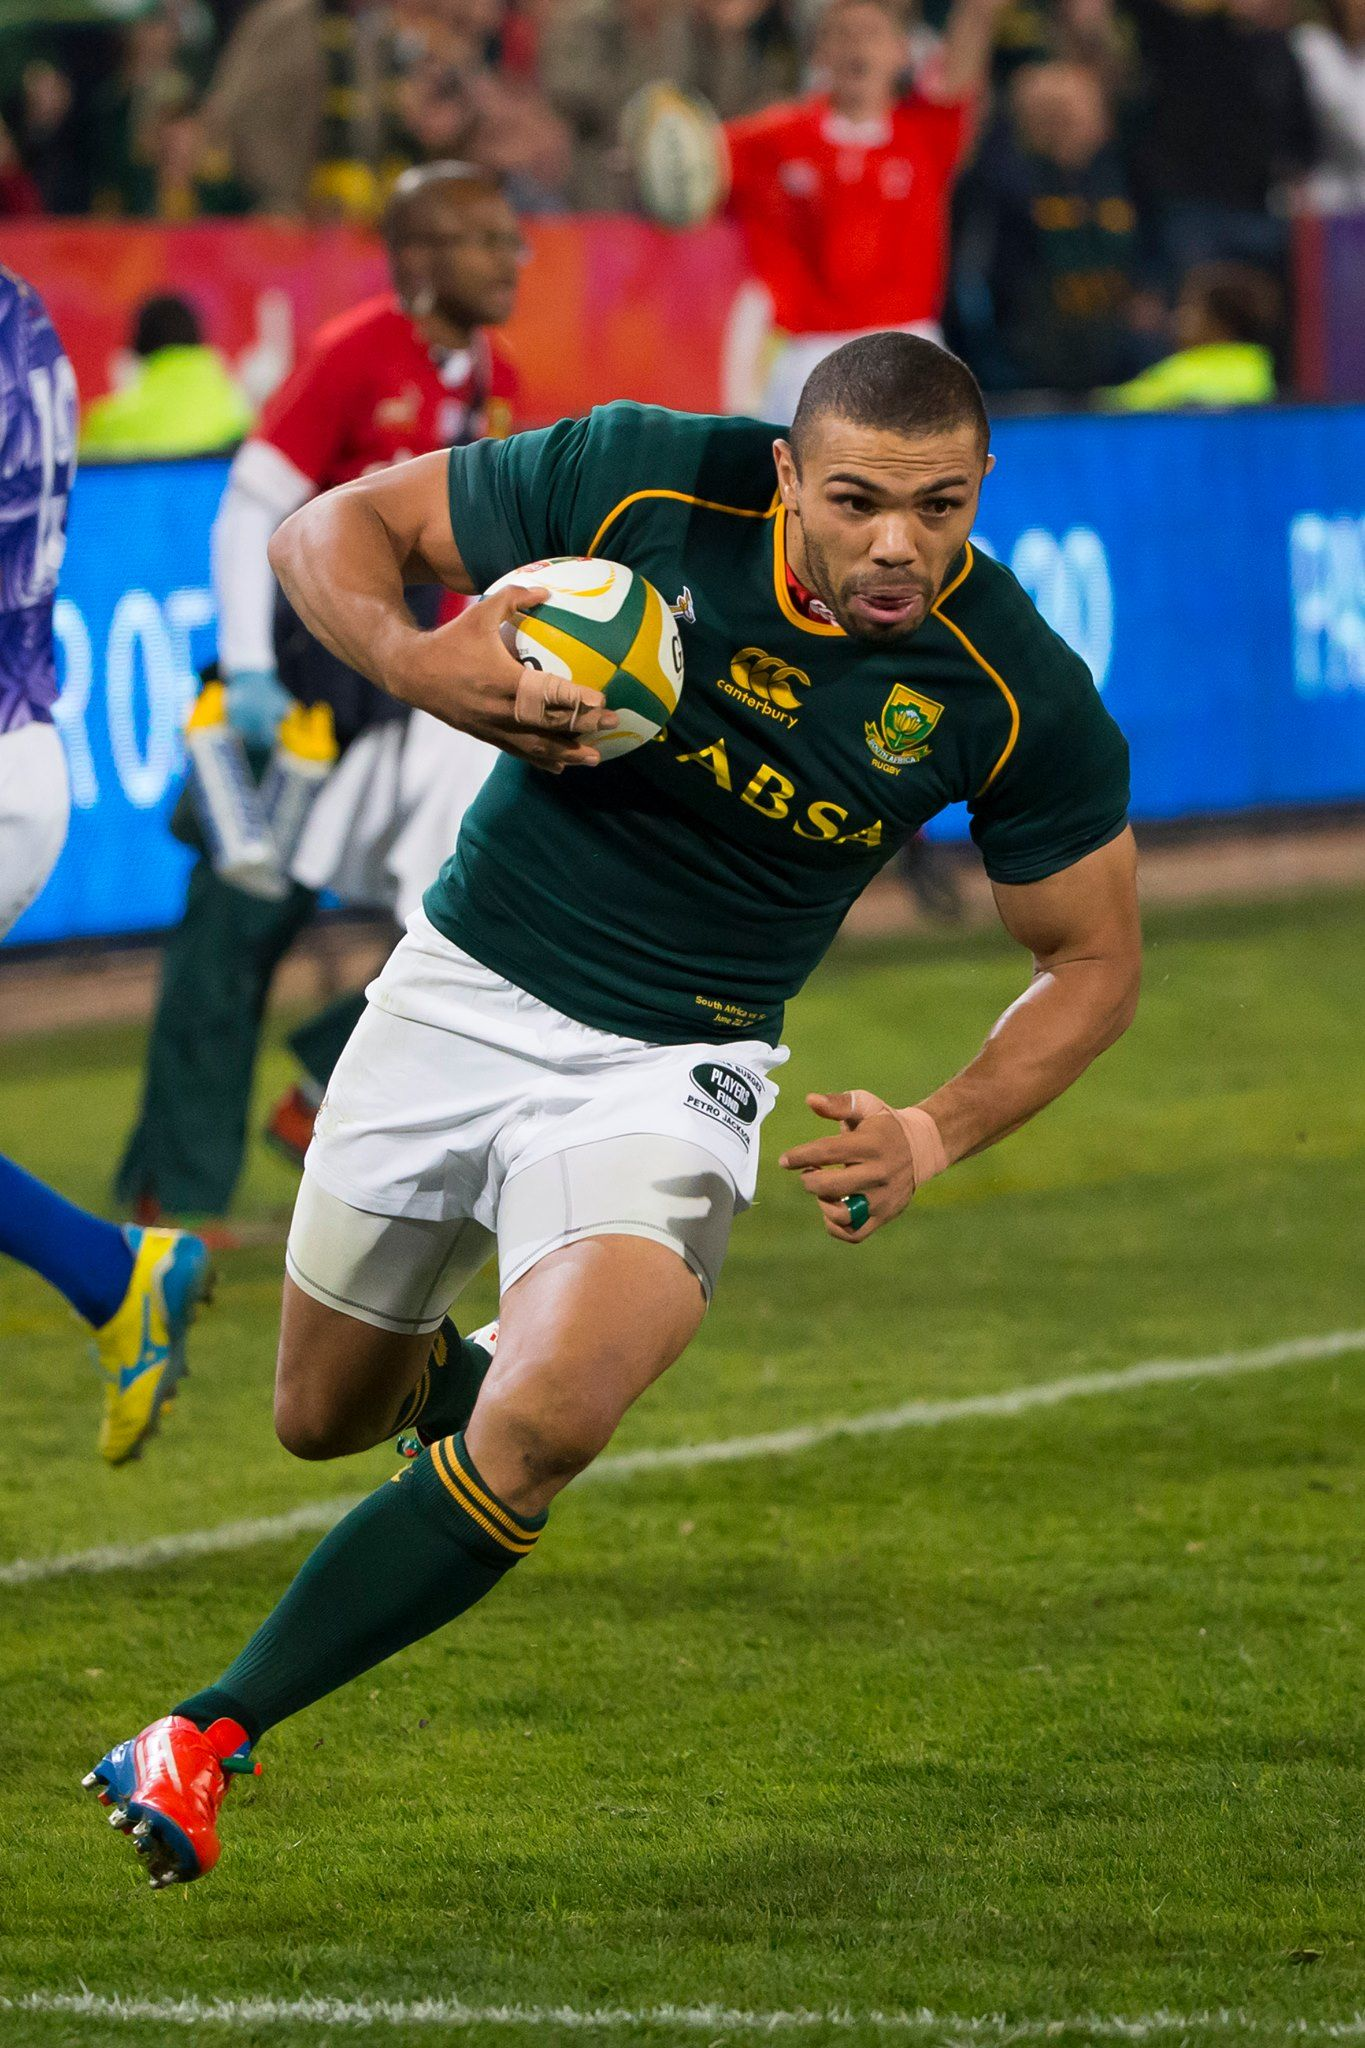 Bryan Habana Brilliant Player South African Rugby Players Springbok Rugby Rugby Tickets